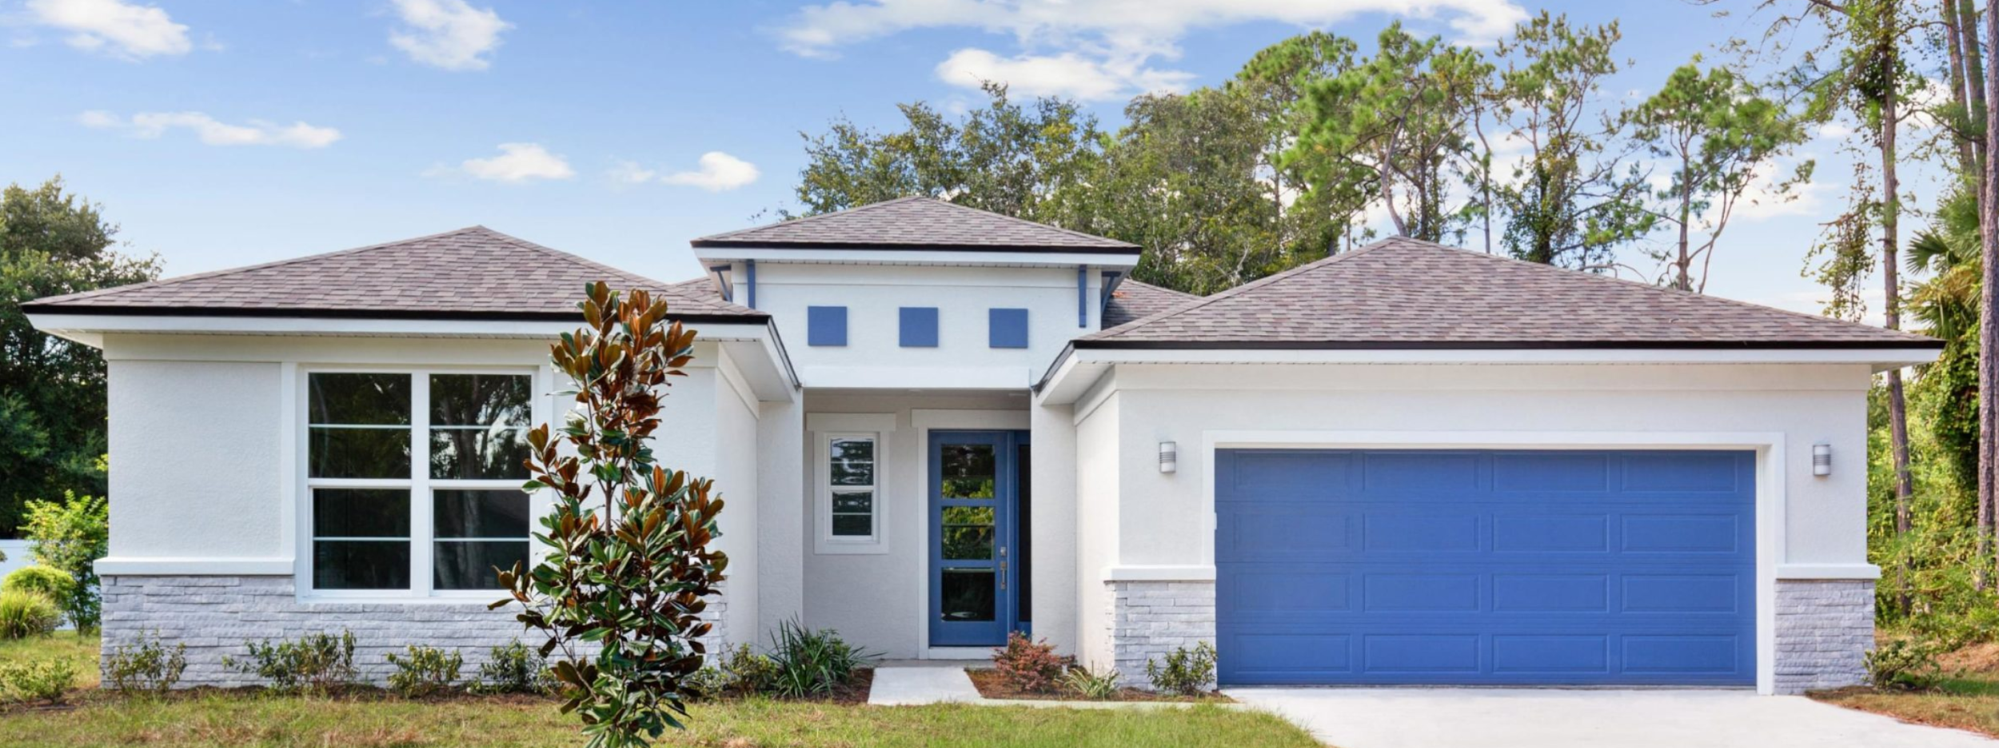 One of Brite's net zero homes in Florida